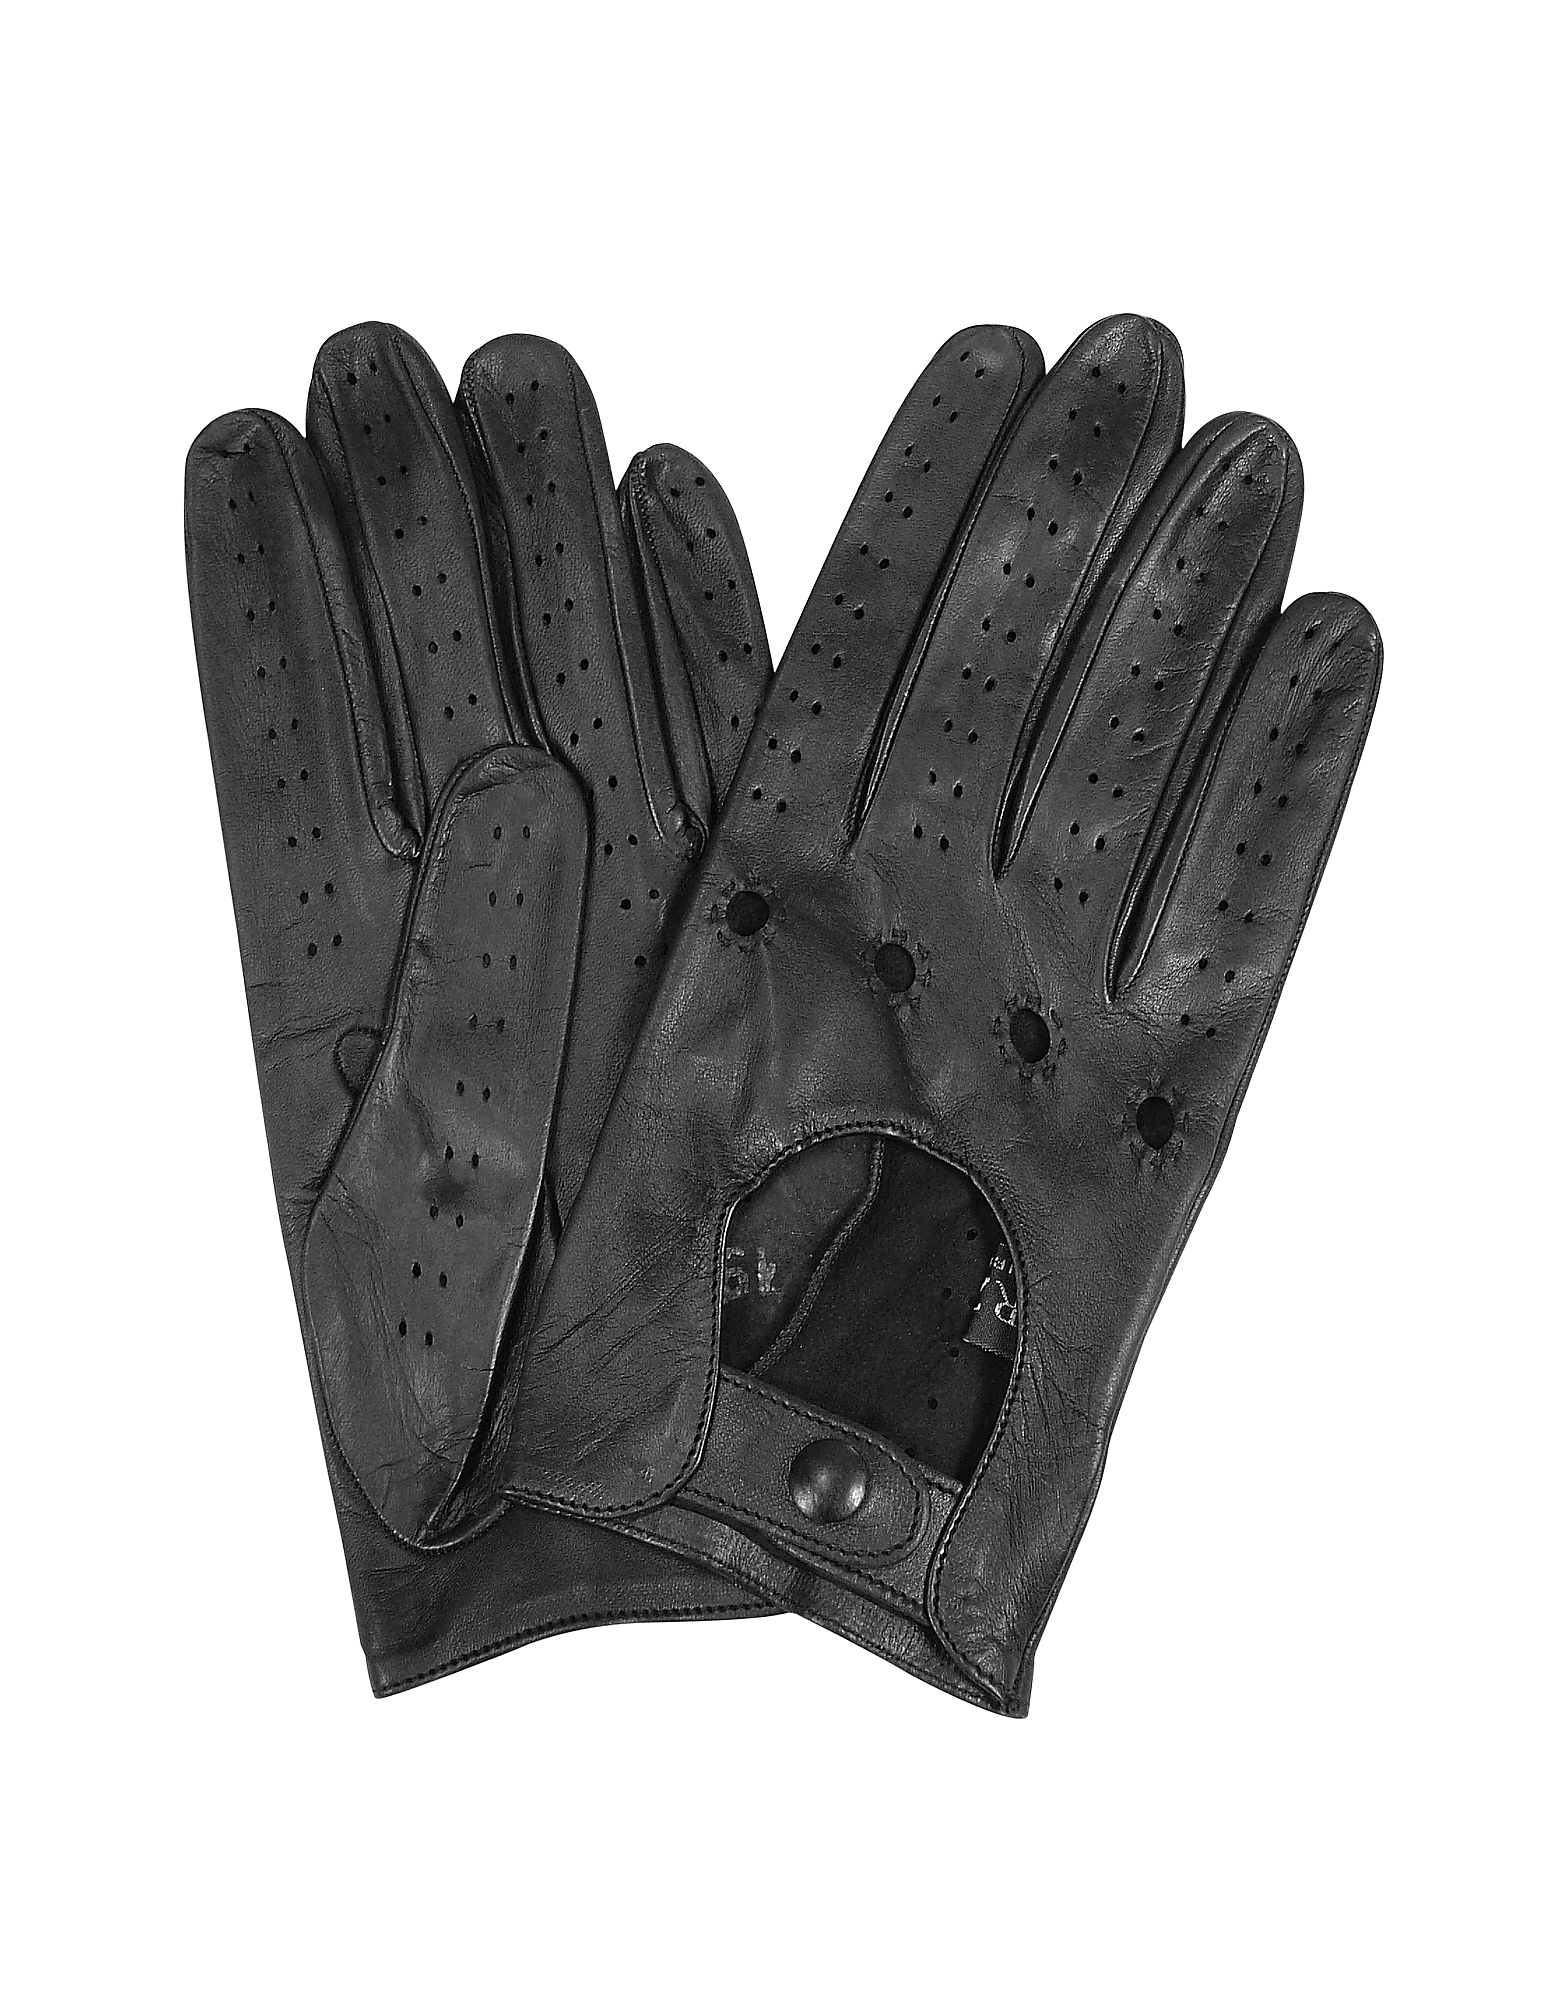 Women's Black Perforated Italian Leather Driving Gloves от Forzieri.com INT